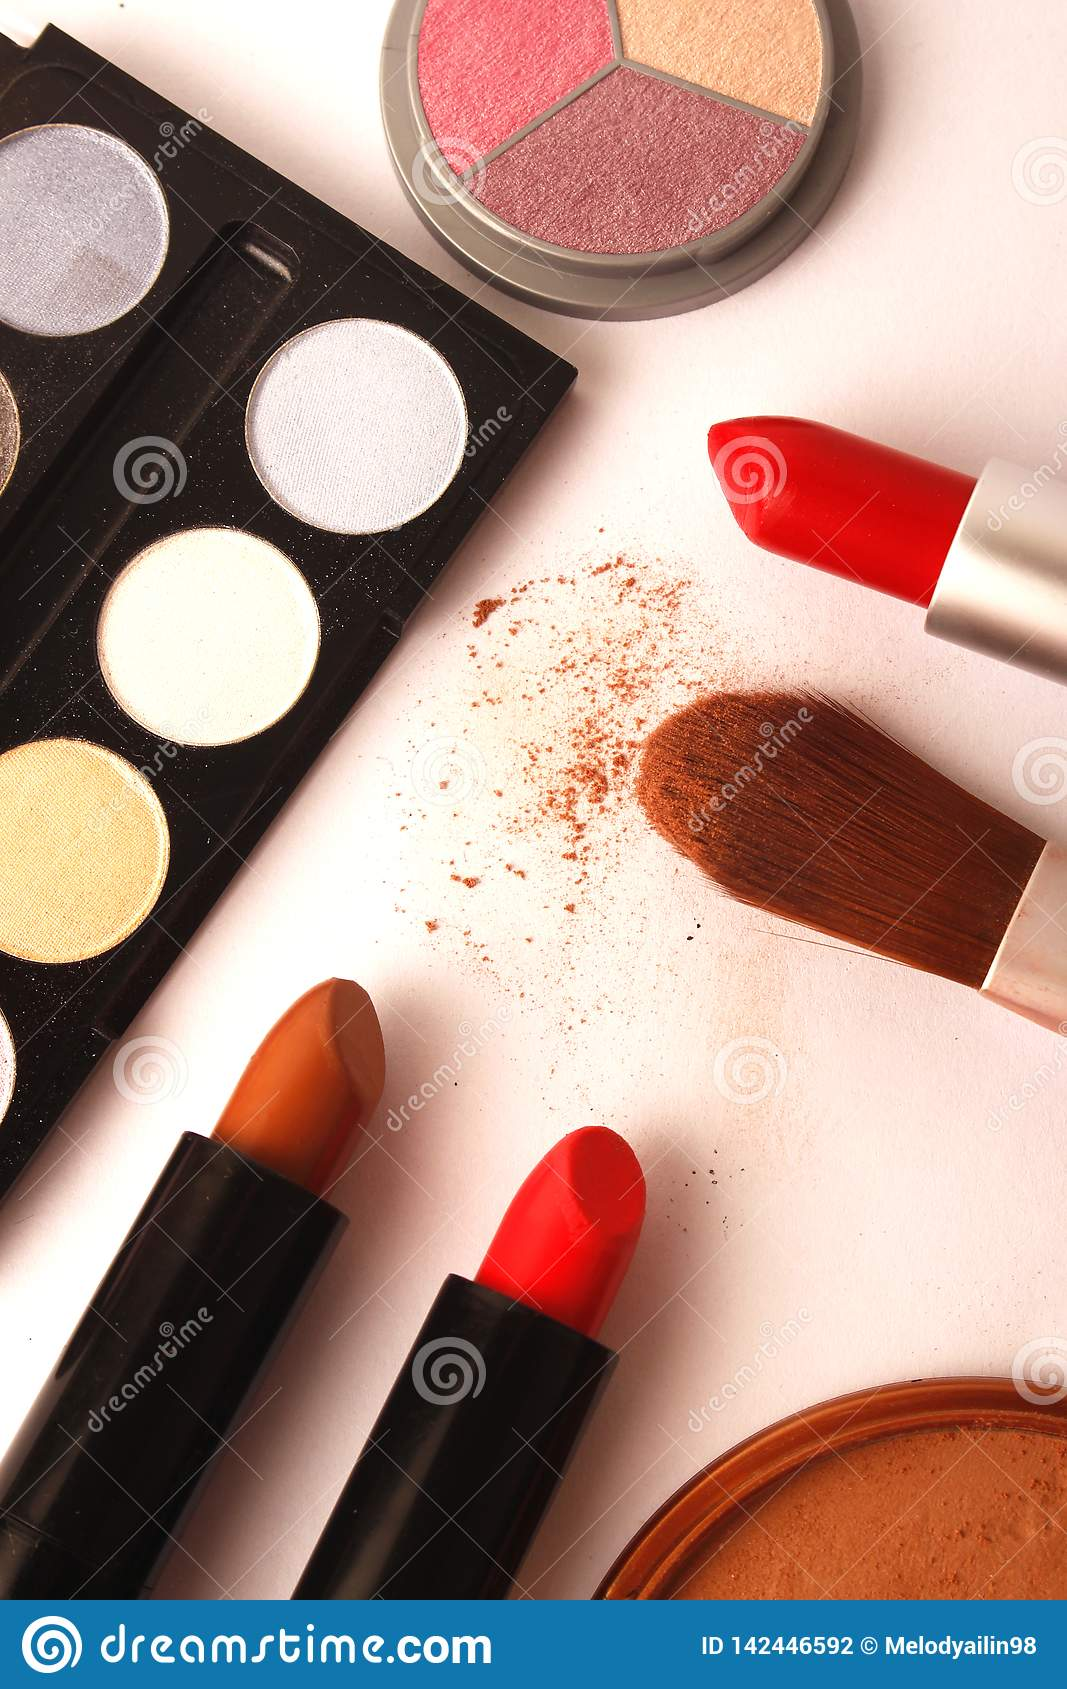 Makeup, cosmetics and brushes